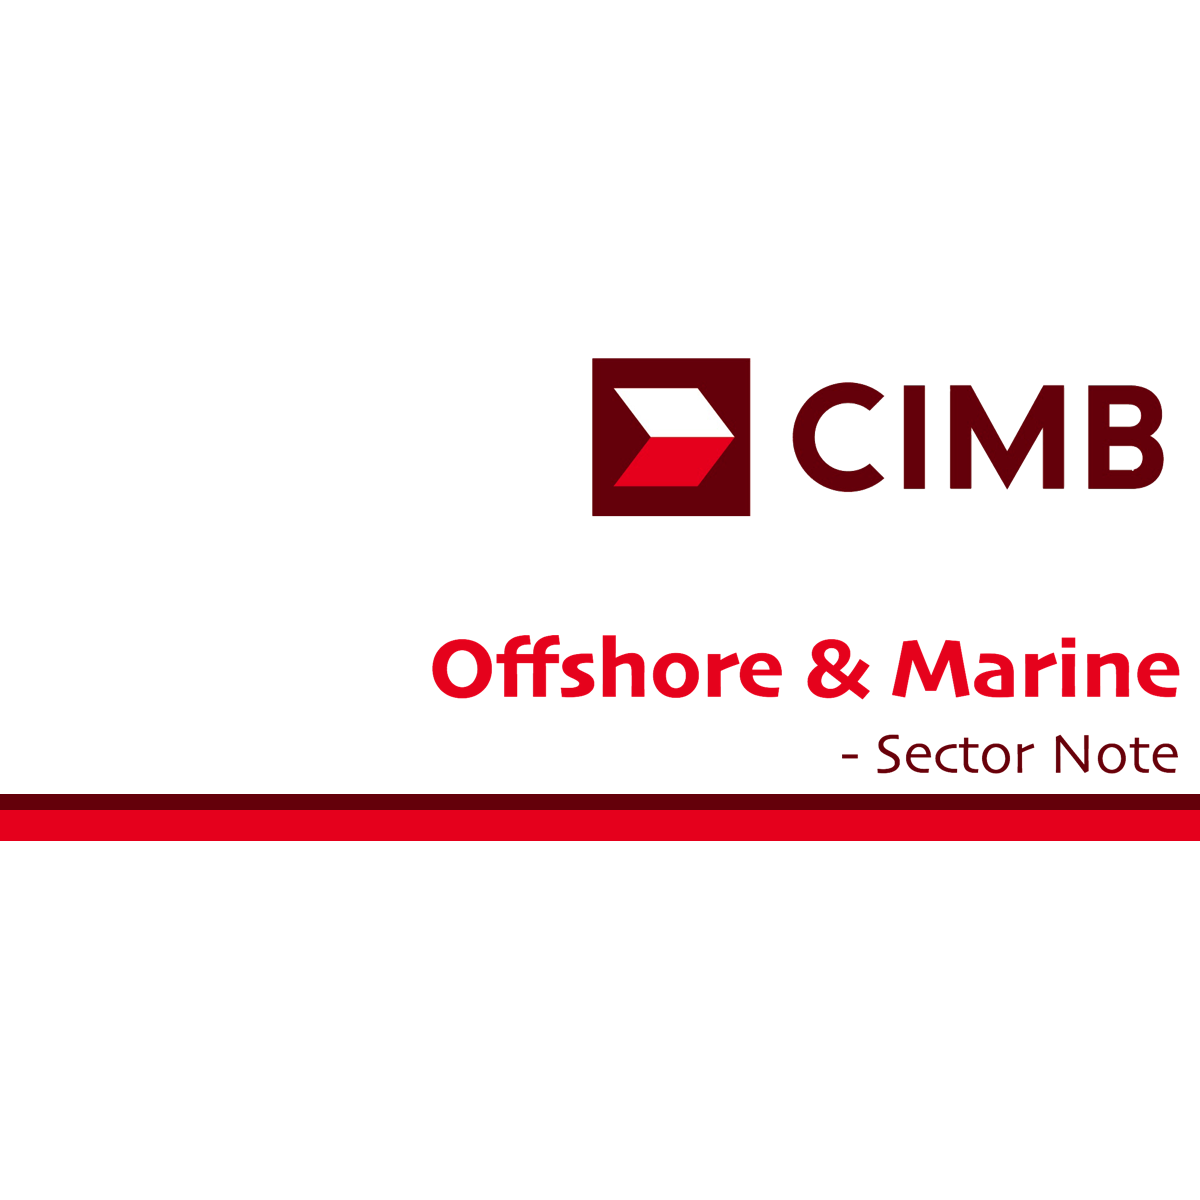 Offshore & Marine - CIMB Research 2017-11-21: Shake Off Them Blues; Go Overweight